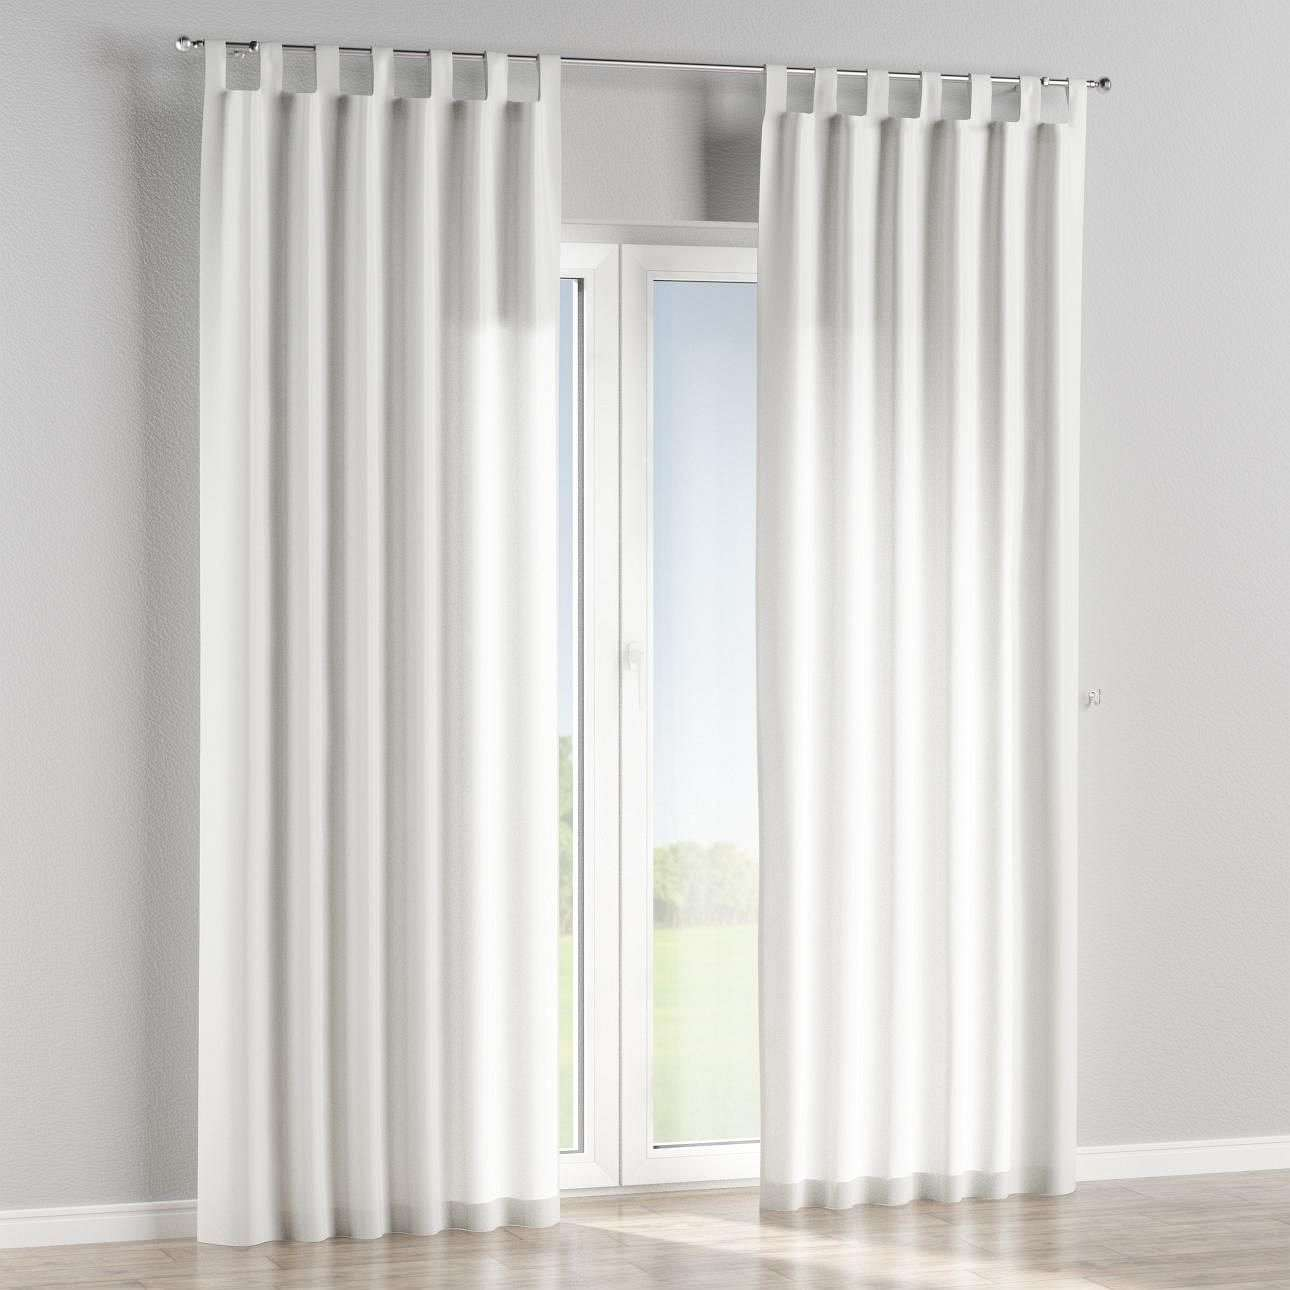 Tab top curtains in collection Romantica, fabric: 128-07